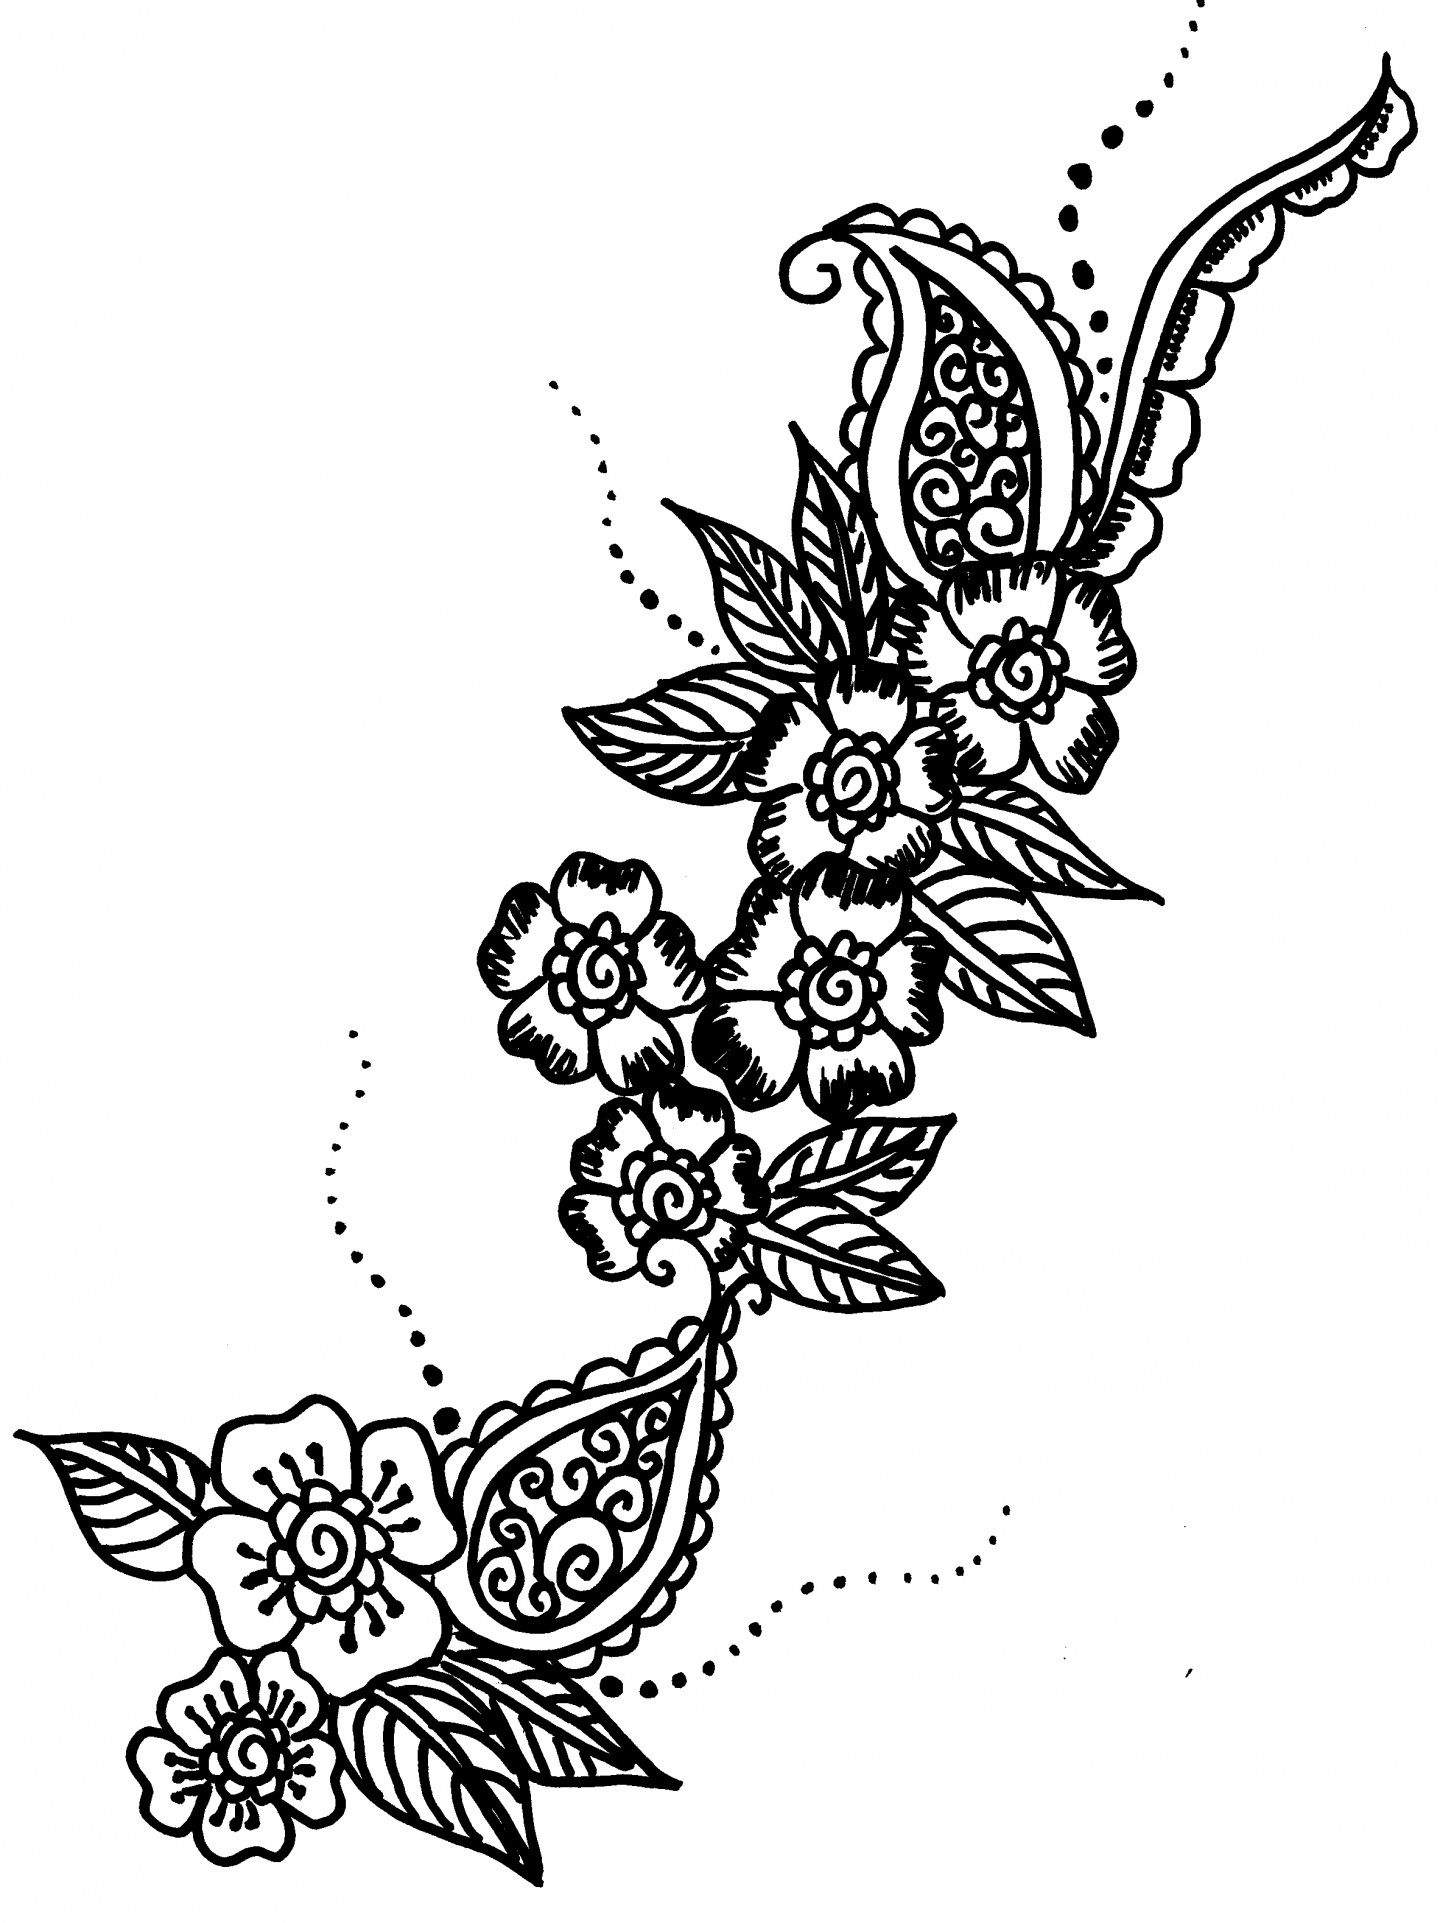 Full size image of henna lotus flower designs flowers and paisley full size image of henna lotus flower designs flowers and paisley henna flower tattoo designs at 1440x1923 uploaded by kort 2 izmirmasajfo